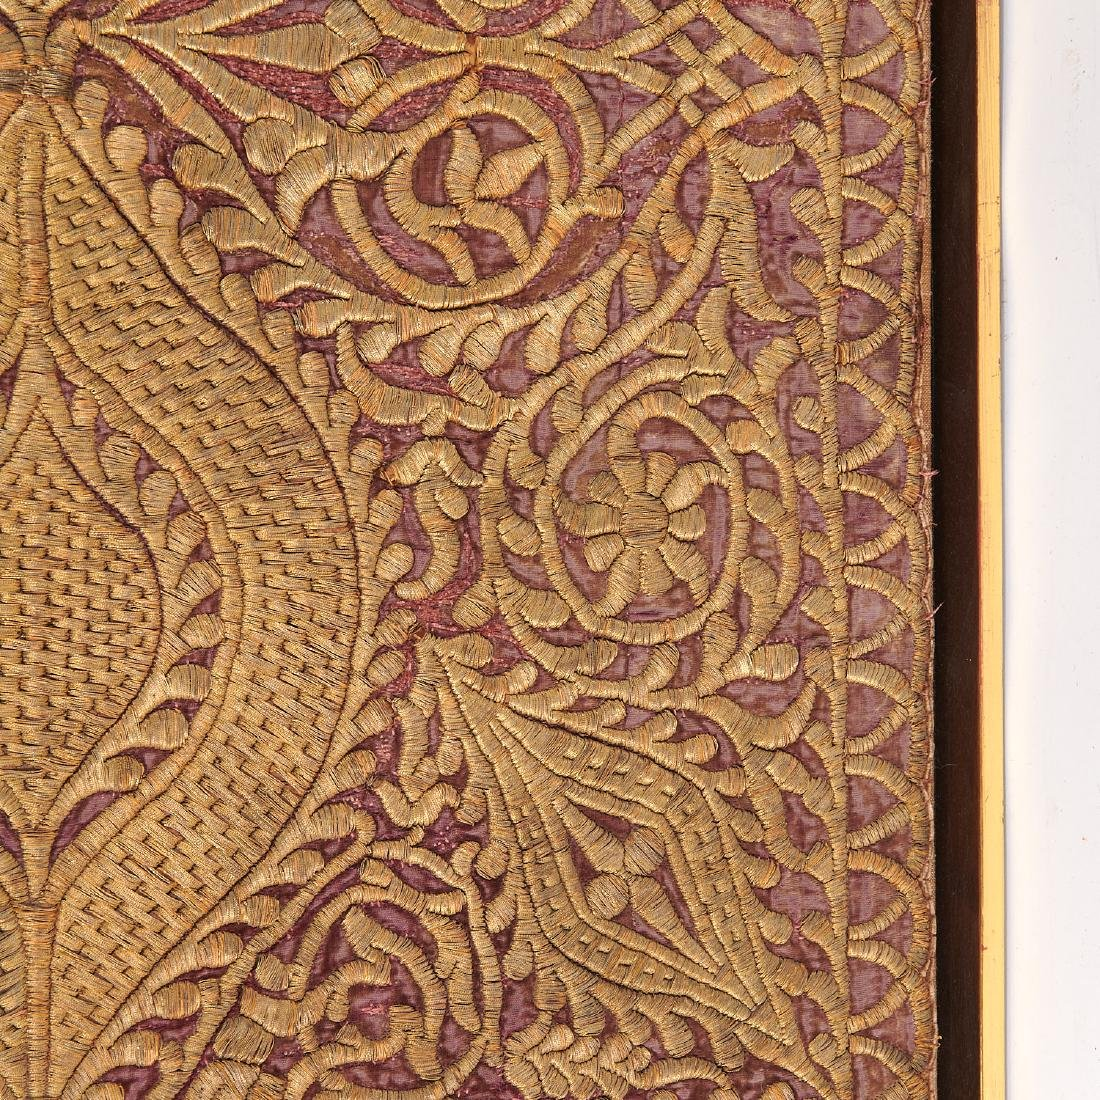 Large Mughal silk and metal threaded tapestry - 8